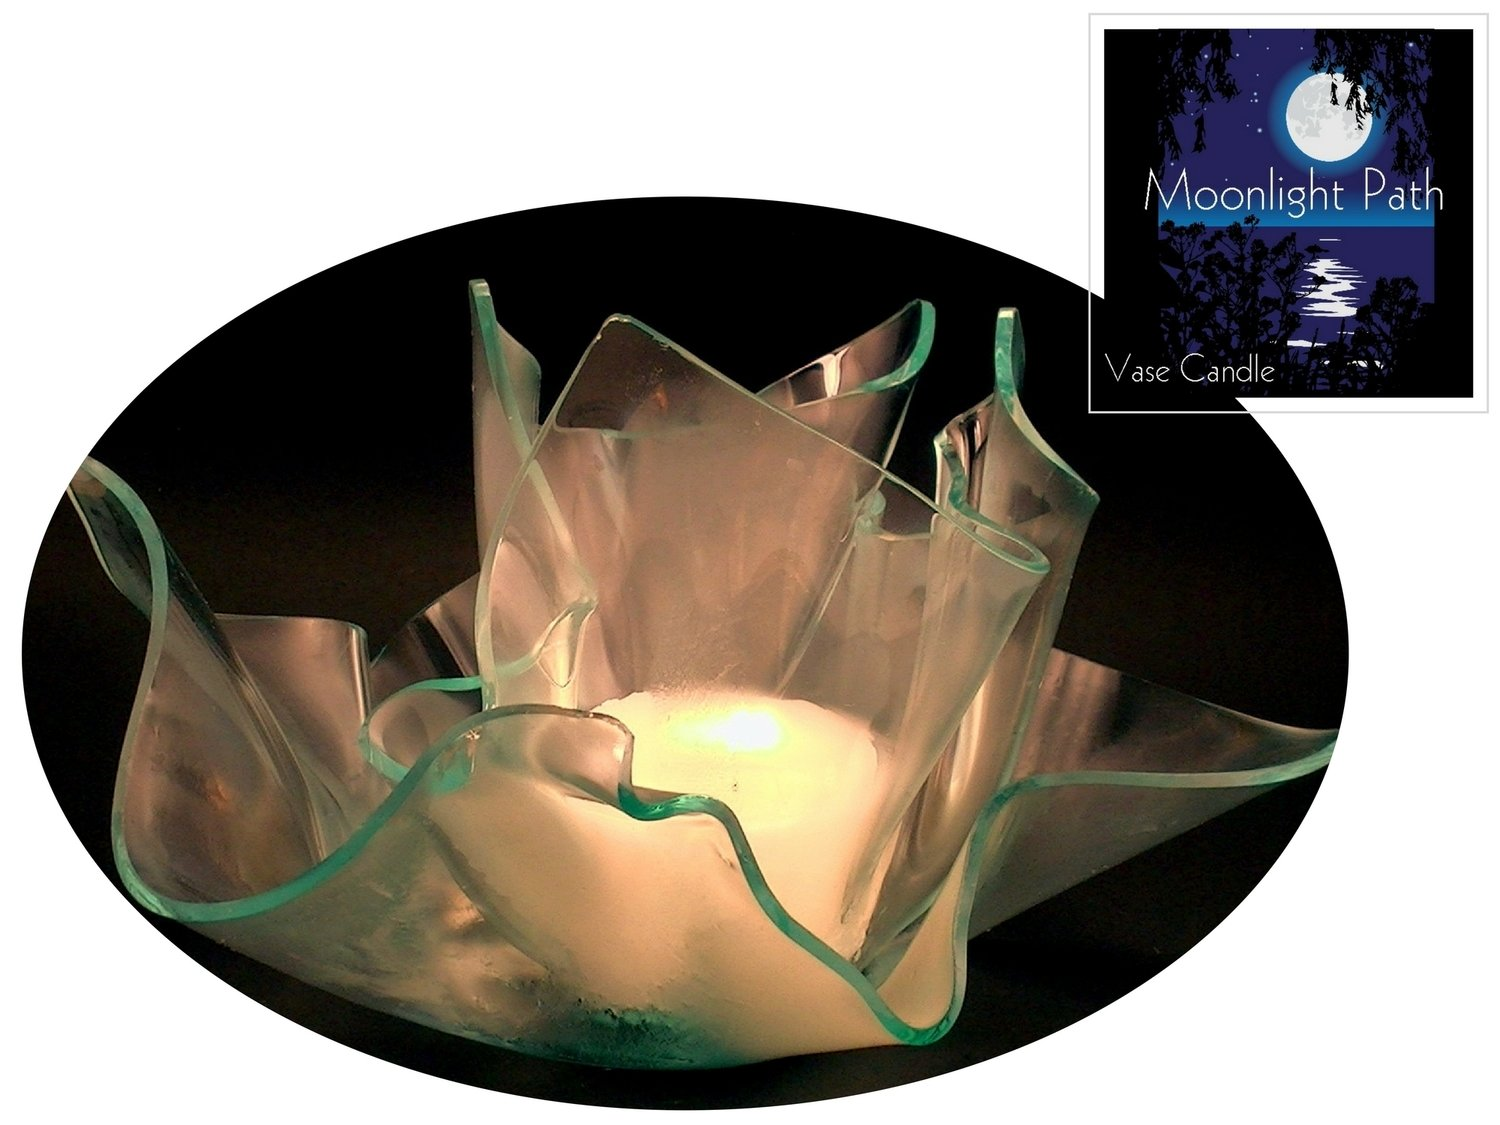 2 Moonlight Path Candle Refills | Clear Satin Vase & Dish Set